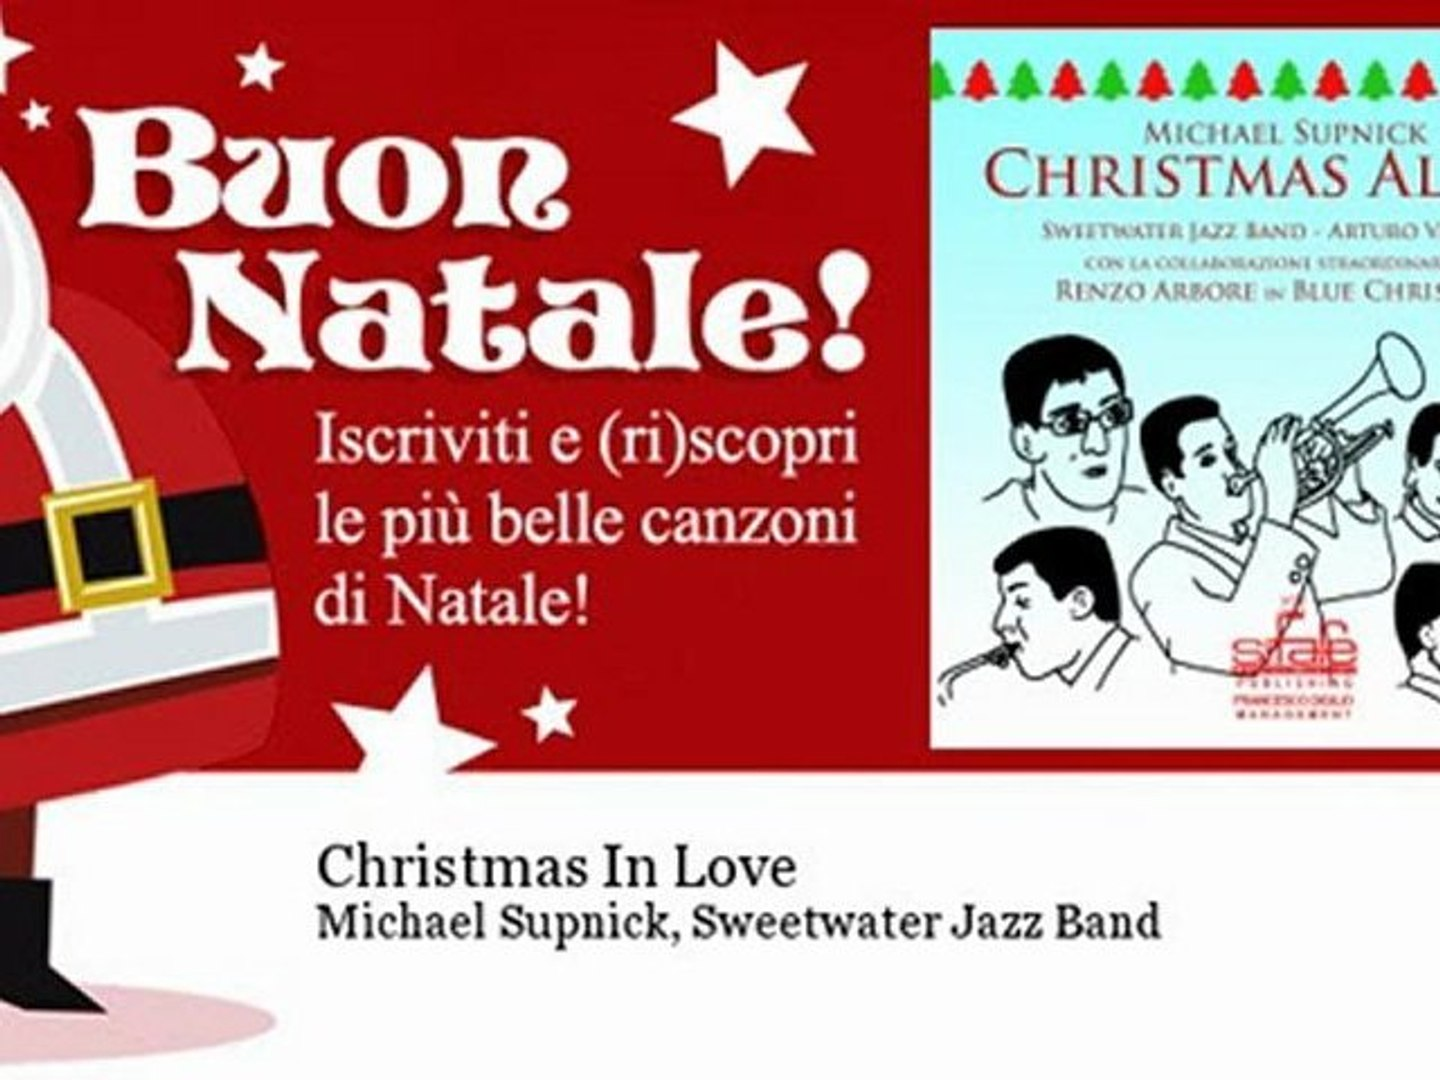 Michael Supnick, Sweetwater Jazz Band - Christmas In Love - Natale